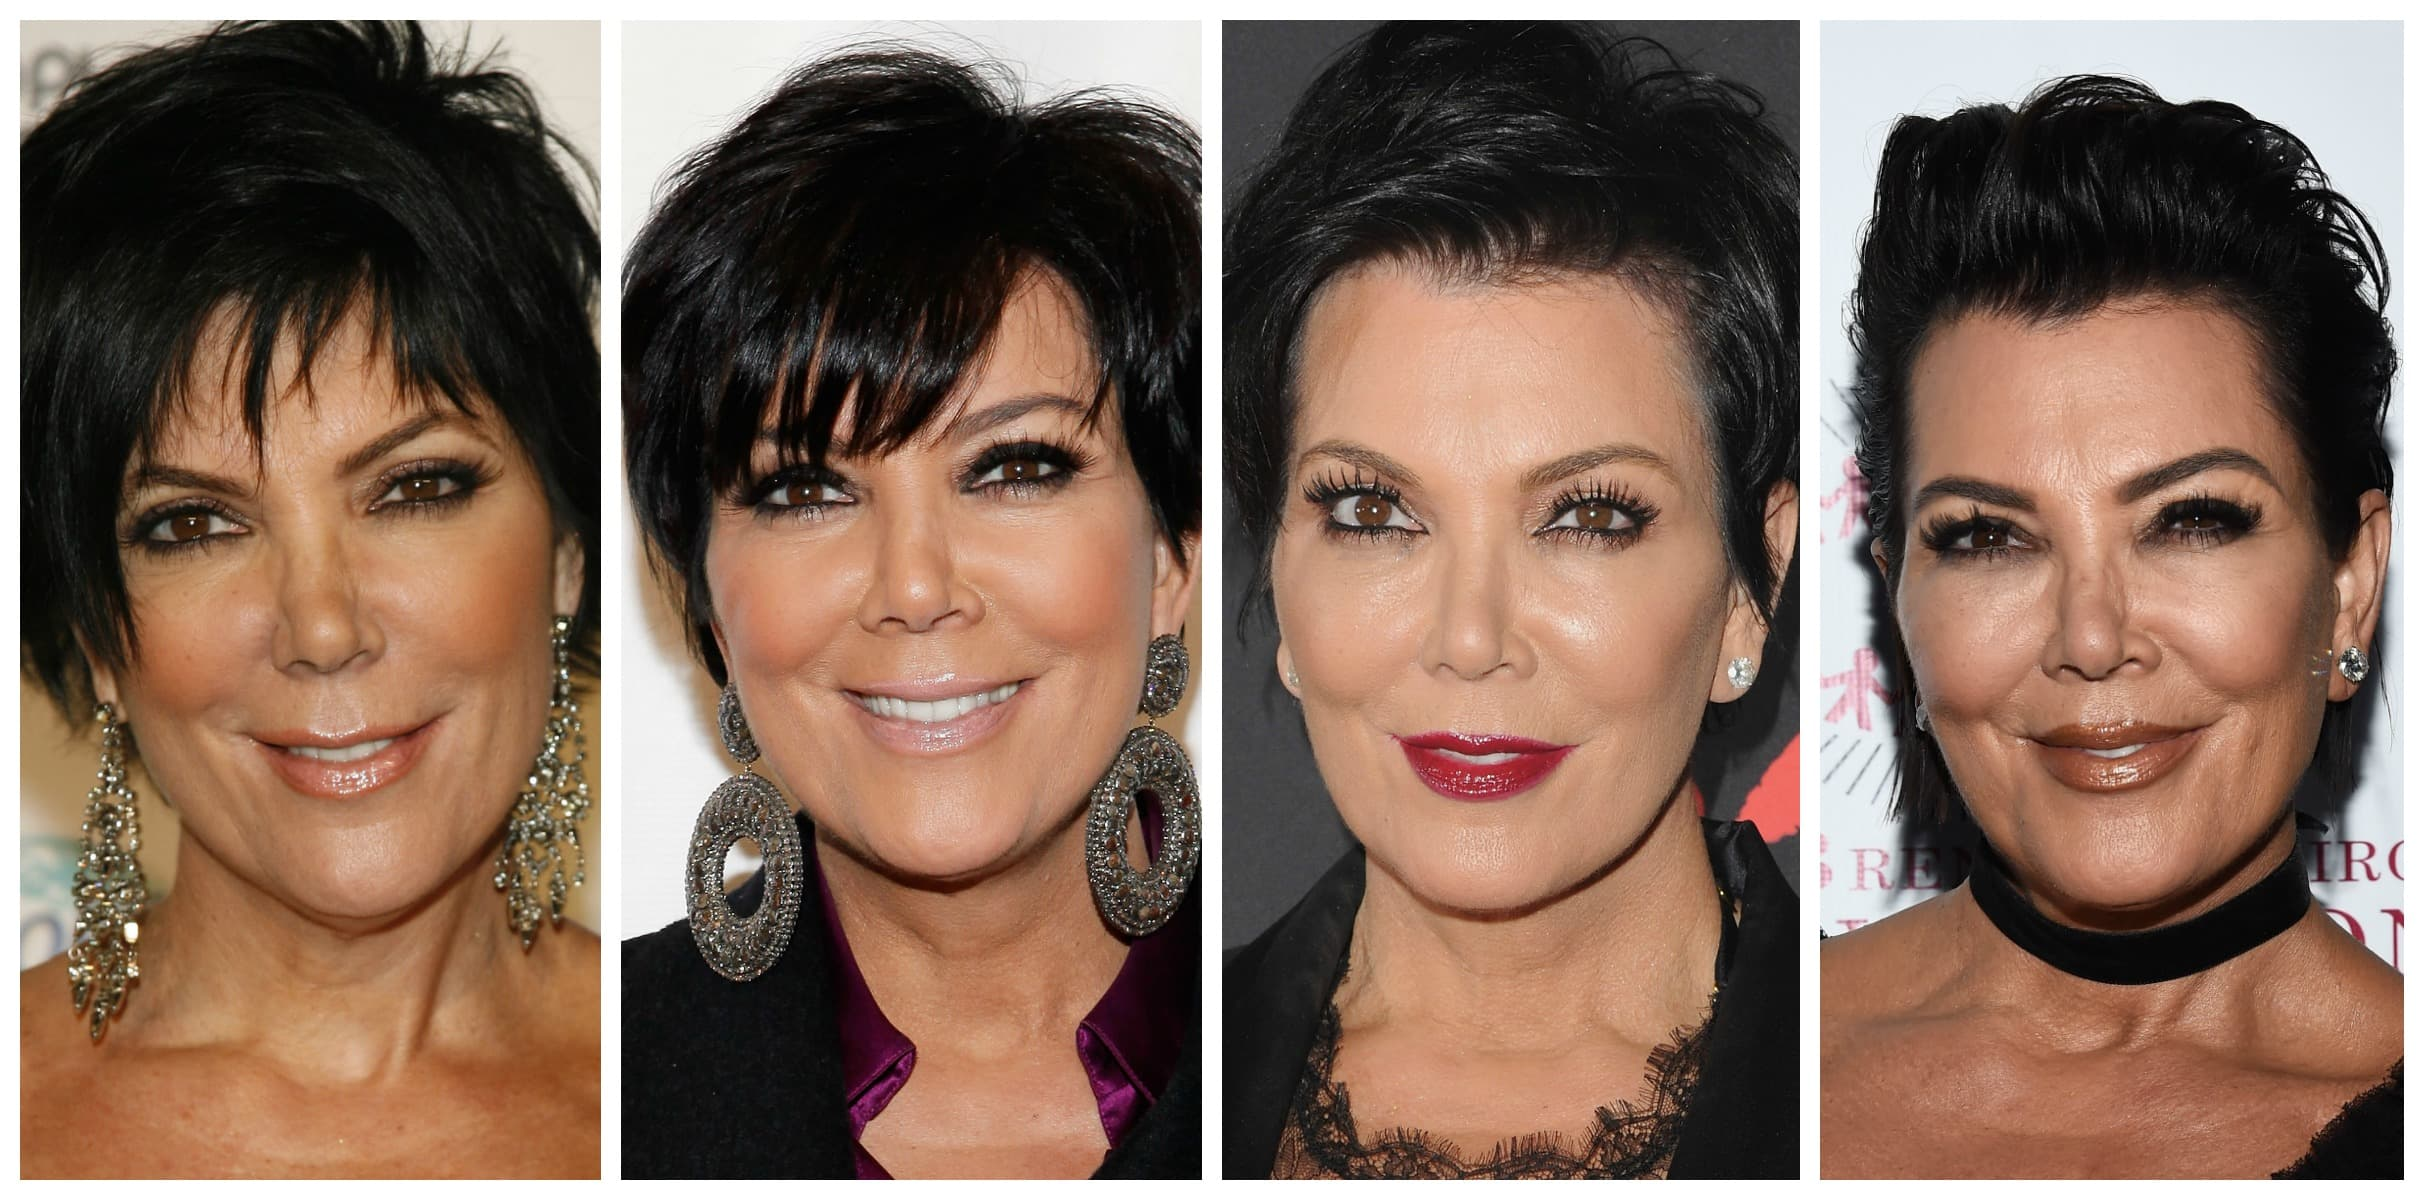 Kim Kardashian Plastic Surgery Face Before And After 1